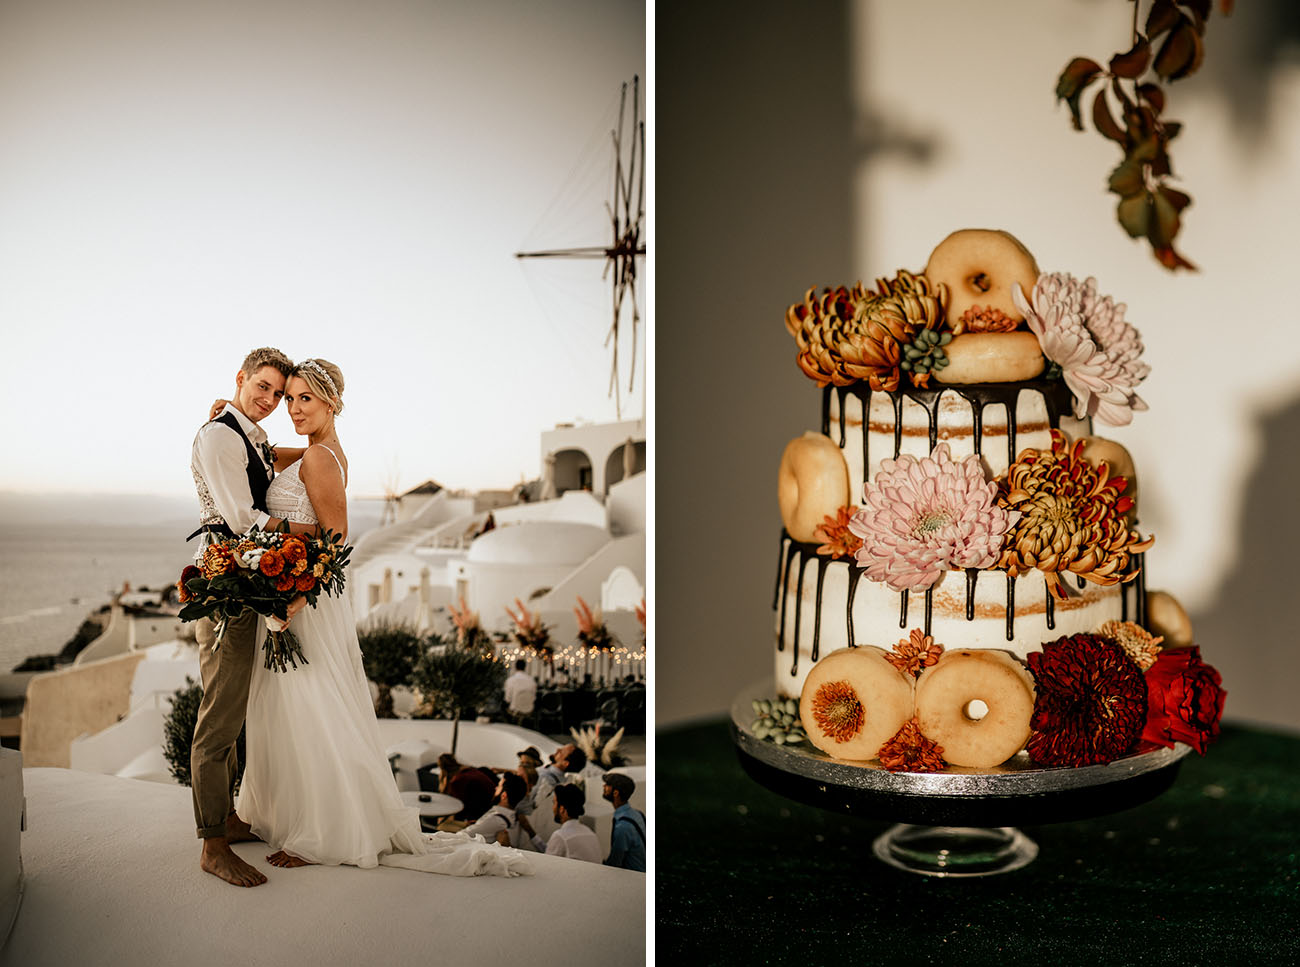 donuts works well as desserts on weddings